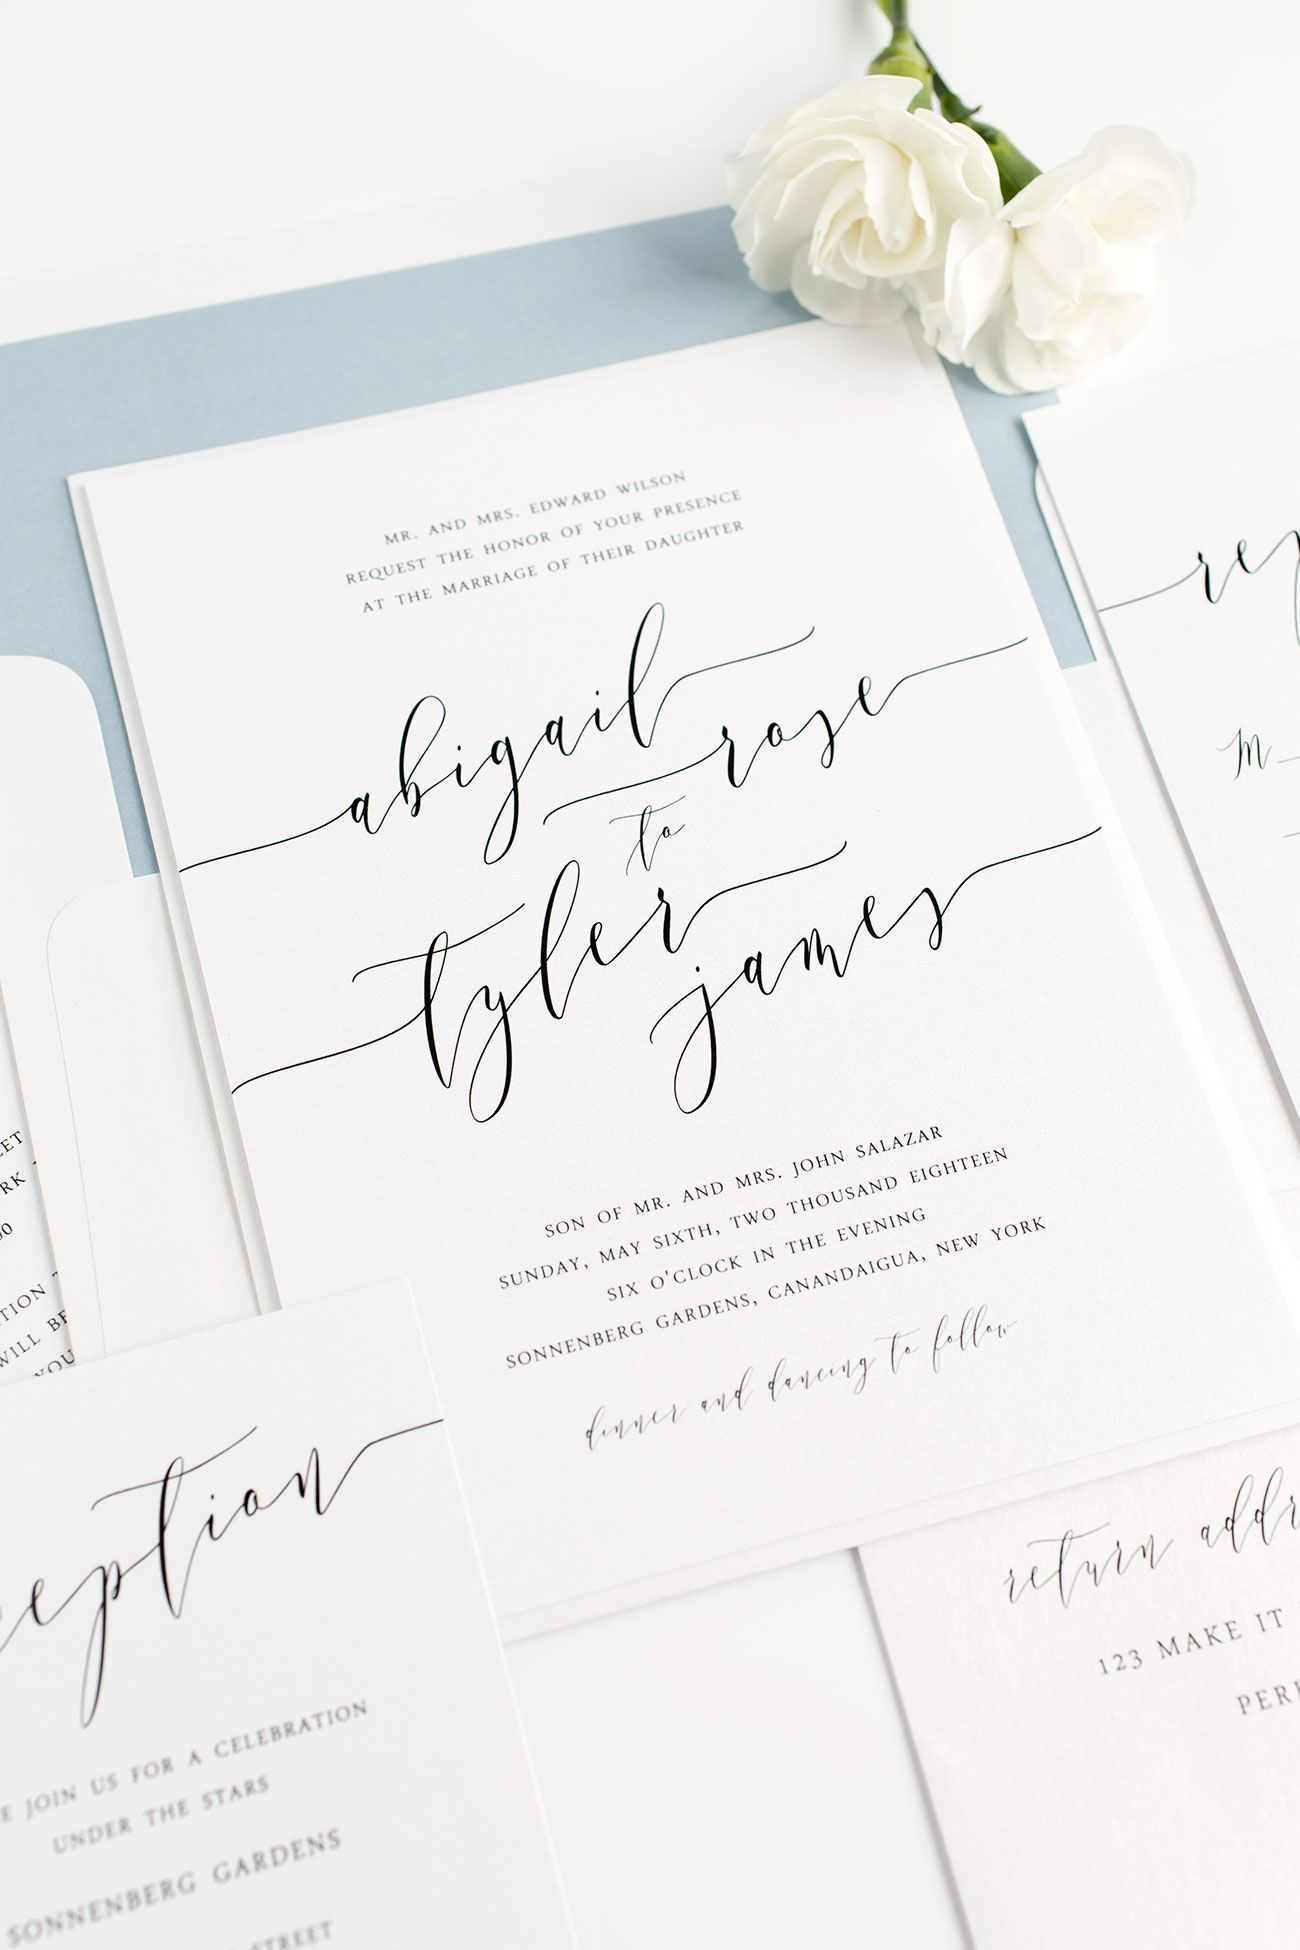 sample of wedding invitation letter%0A Dusty Blue Wedding Invitations with Modern Calligraphy from Shine Wedding  Invitations  Click through for ordering details and a free sample set  we  like but